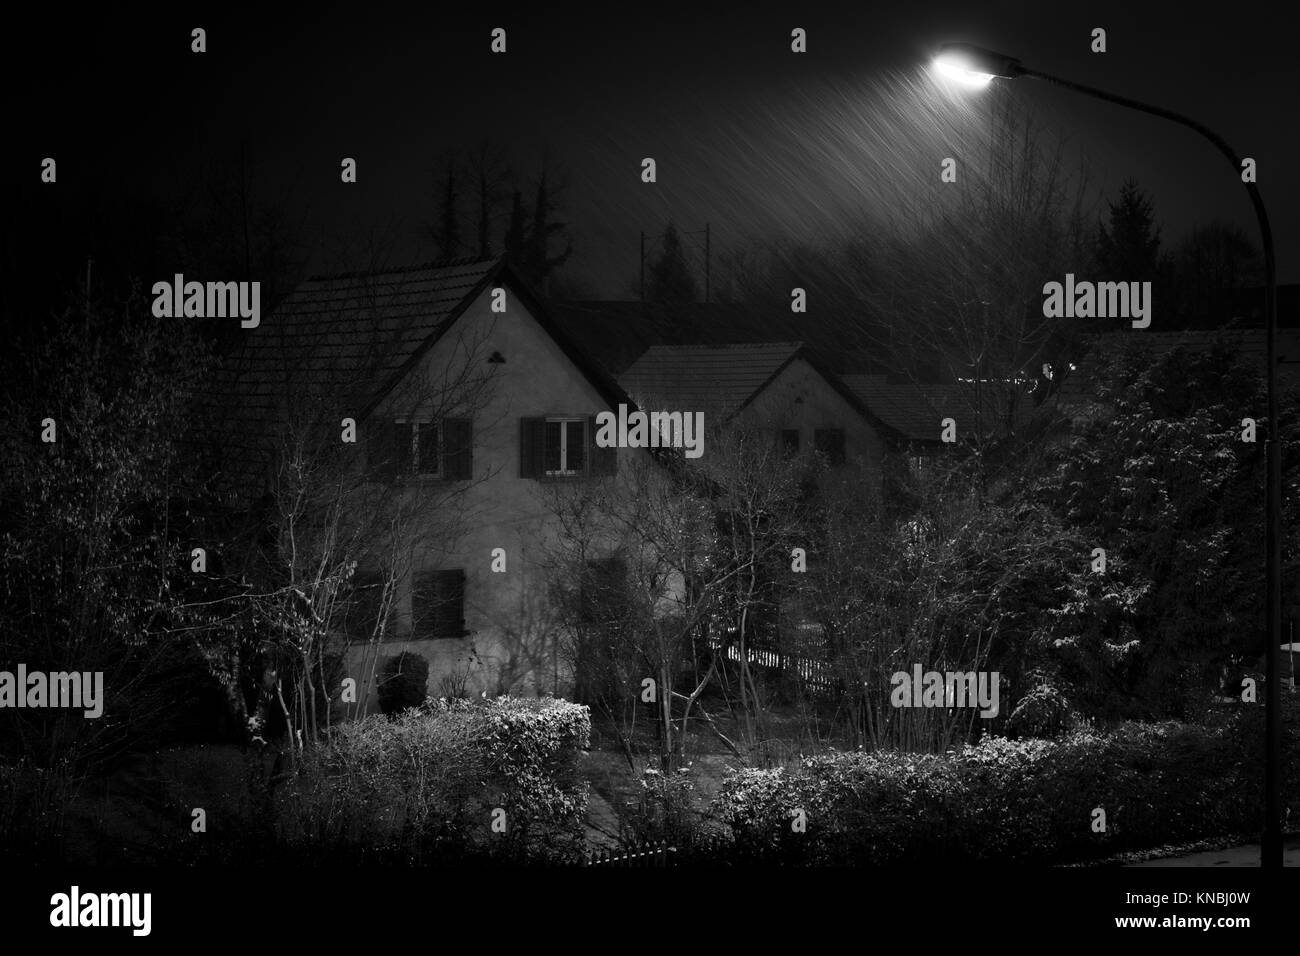 It's snowing, Bülach, Canton of Zürich, Switzerland. - Stock Image